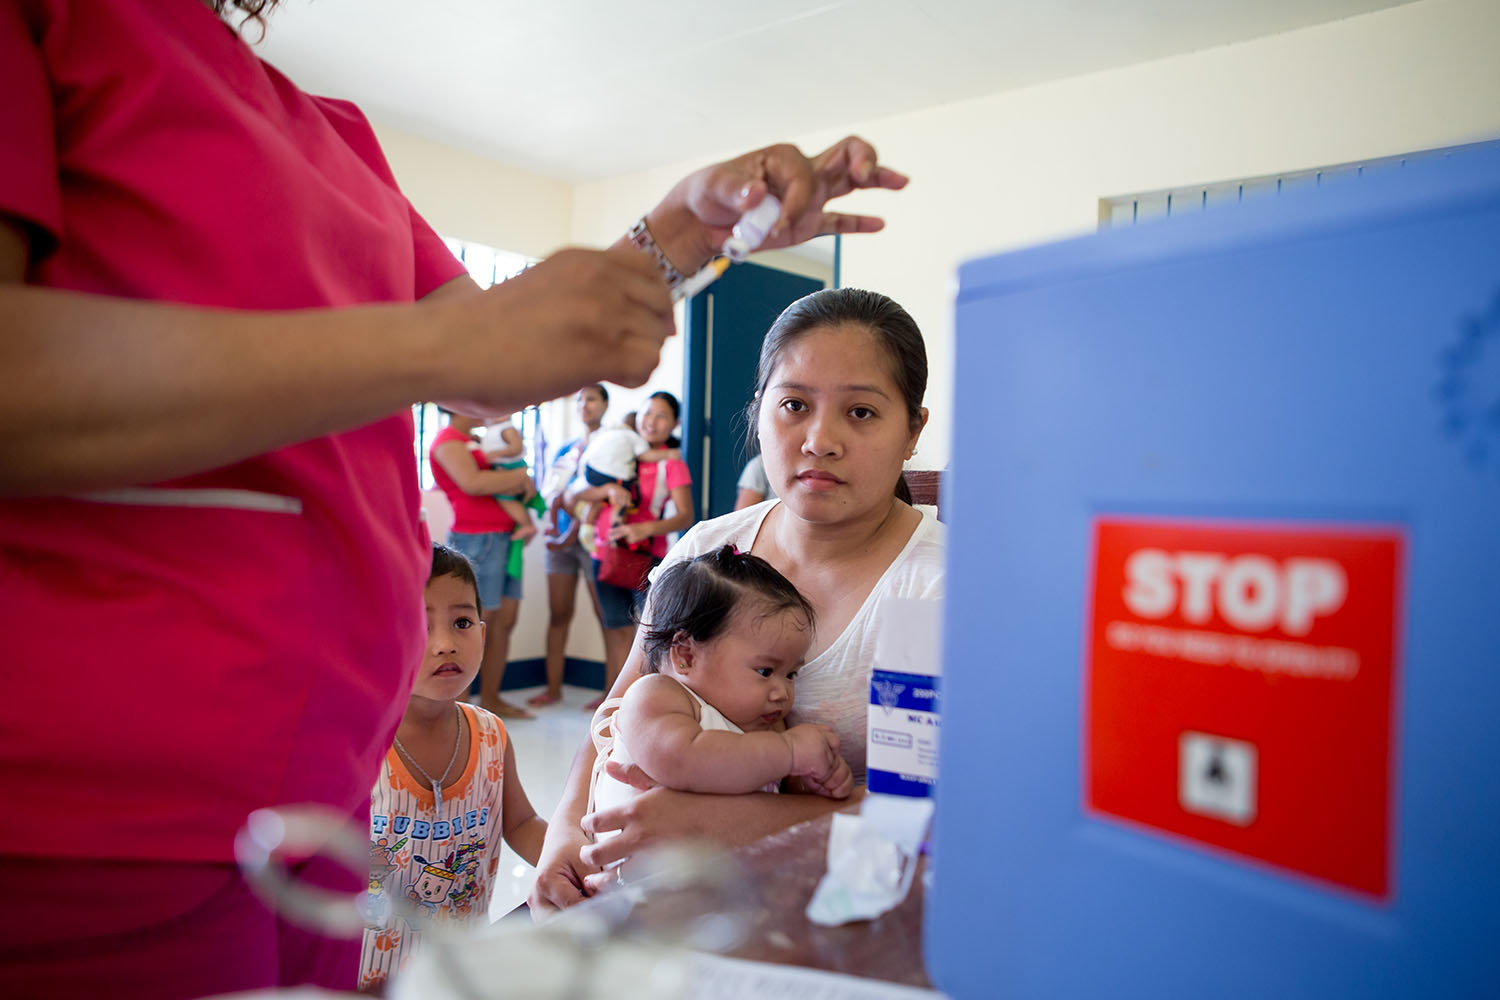 Athena May Ariano at the Barangay Health Station, Arangit UNICEF trip to Tacloban, in the Philipines to report on their response to Typhoon Yolanda, March 2016